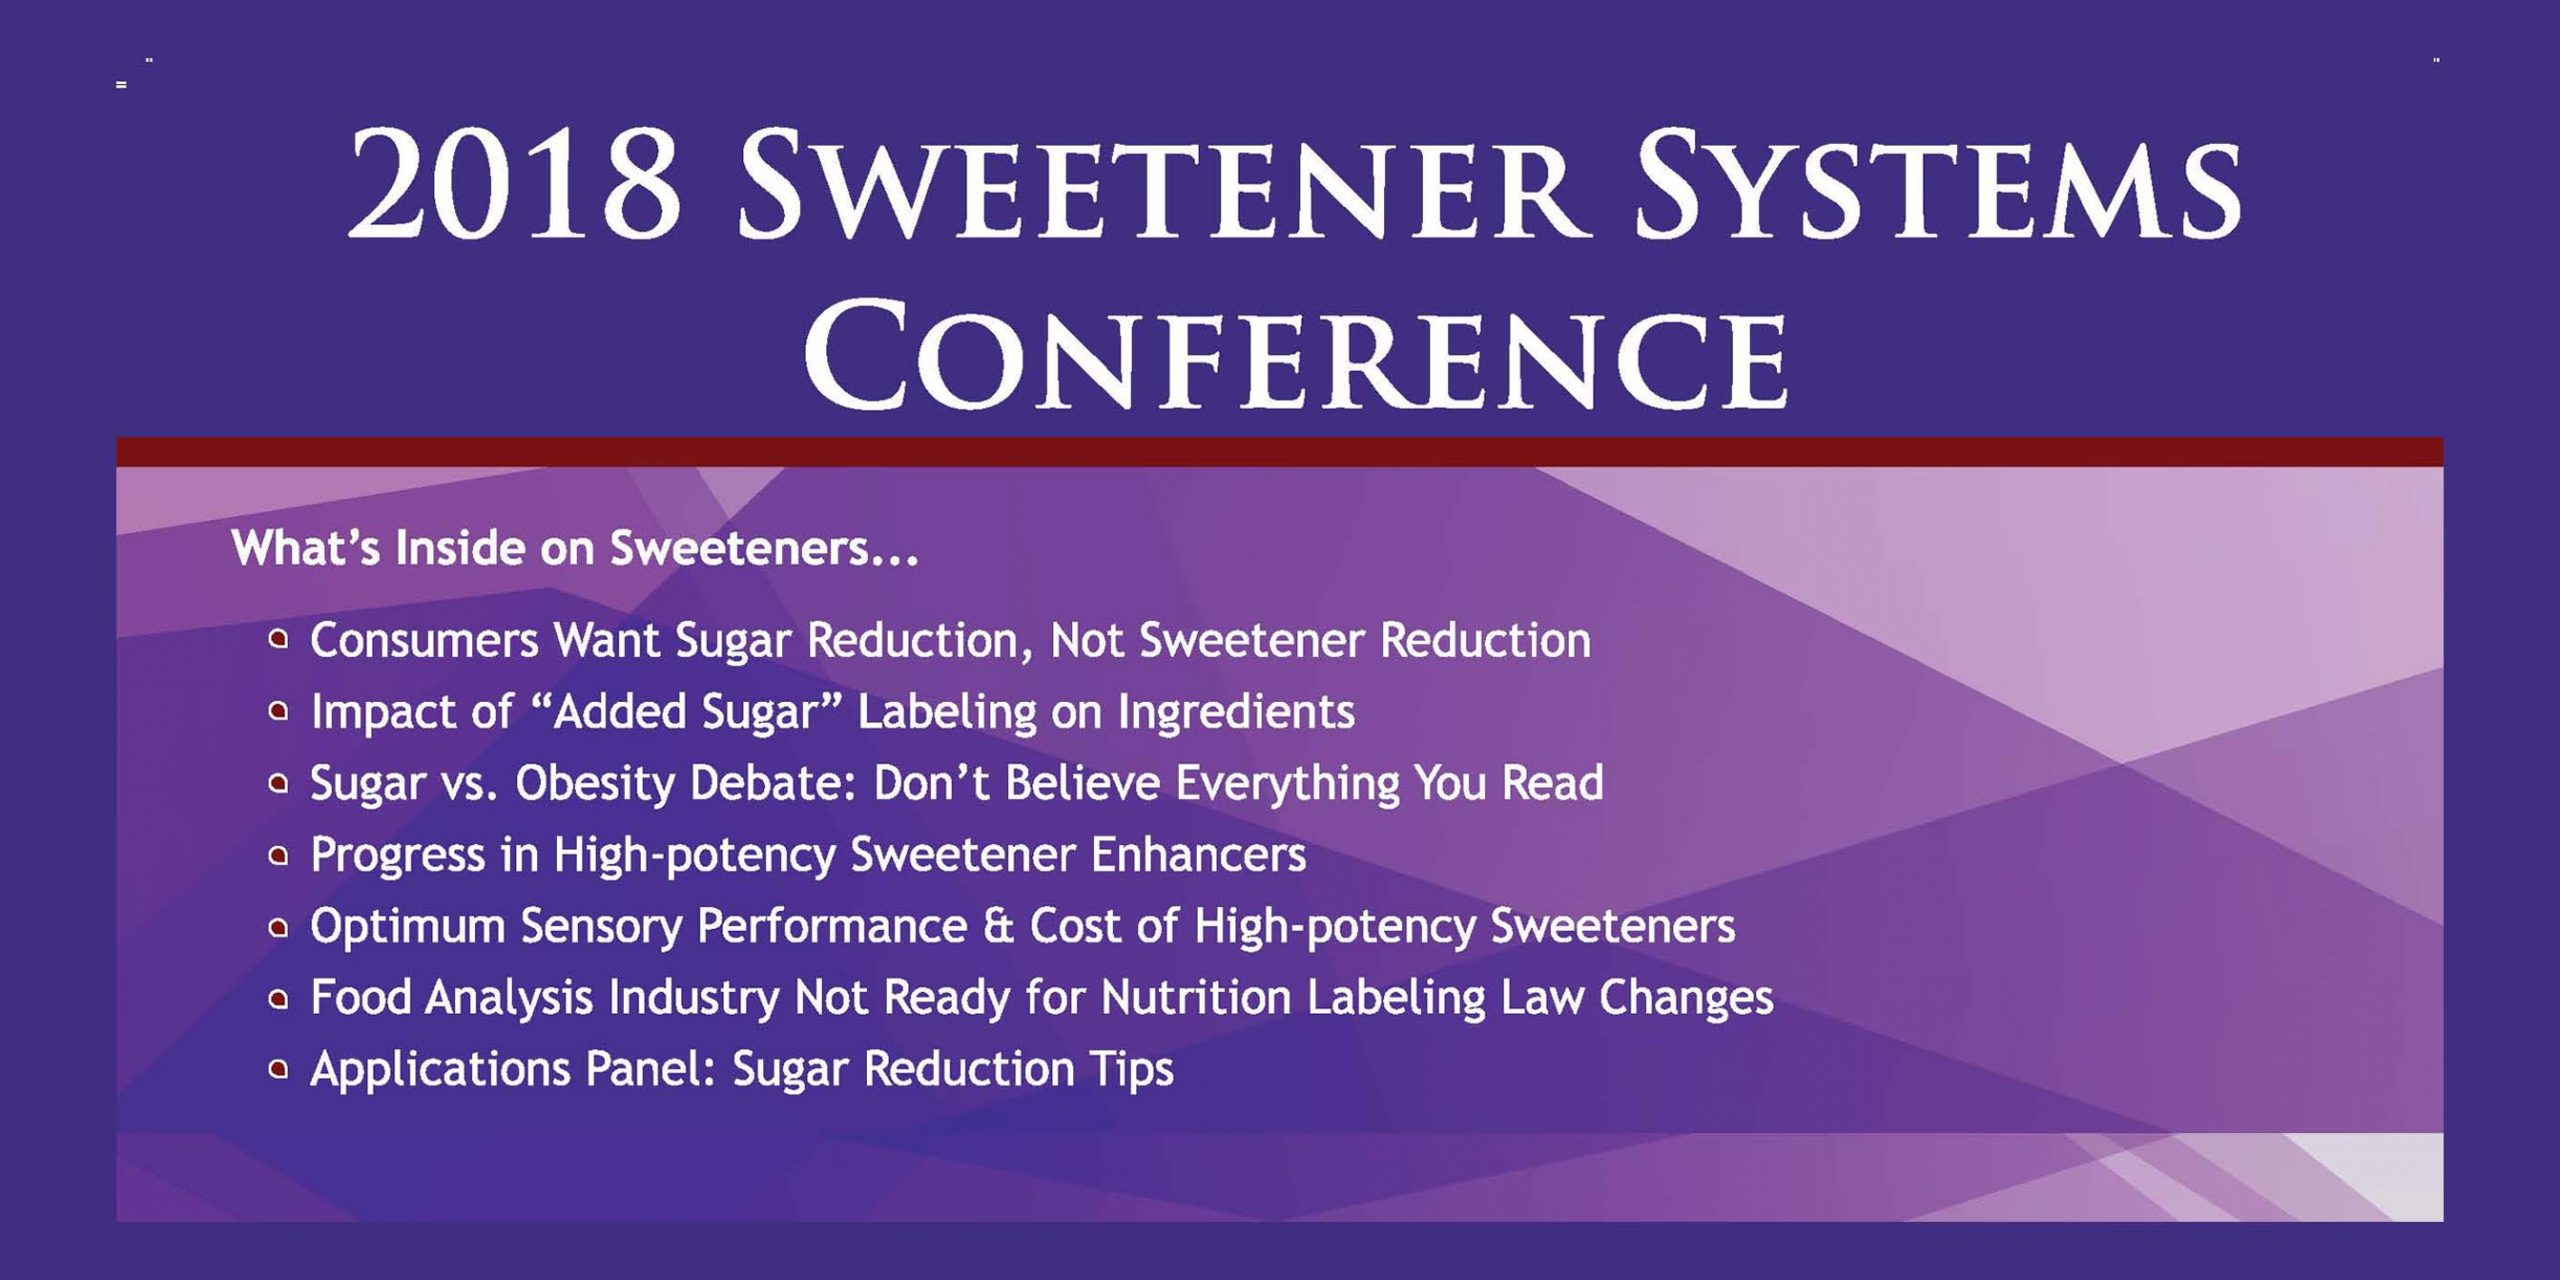 2018 SWEETENER SYSTEMS POST CONFERENCE MAGAZINE-FEATURE